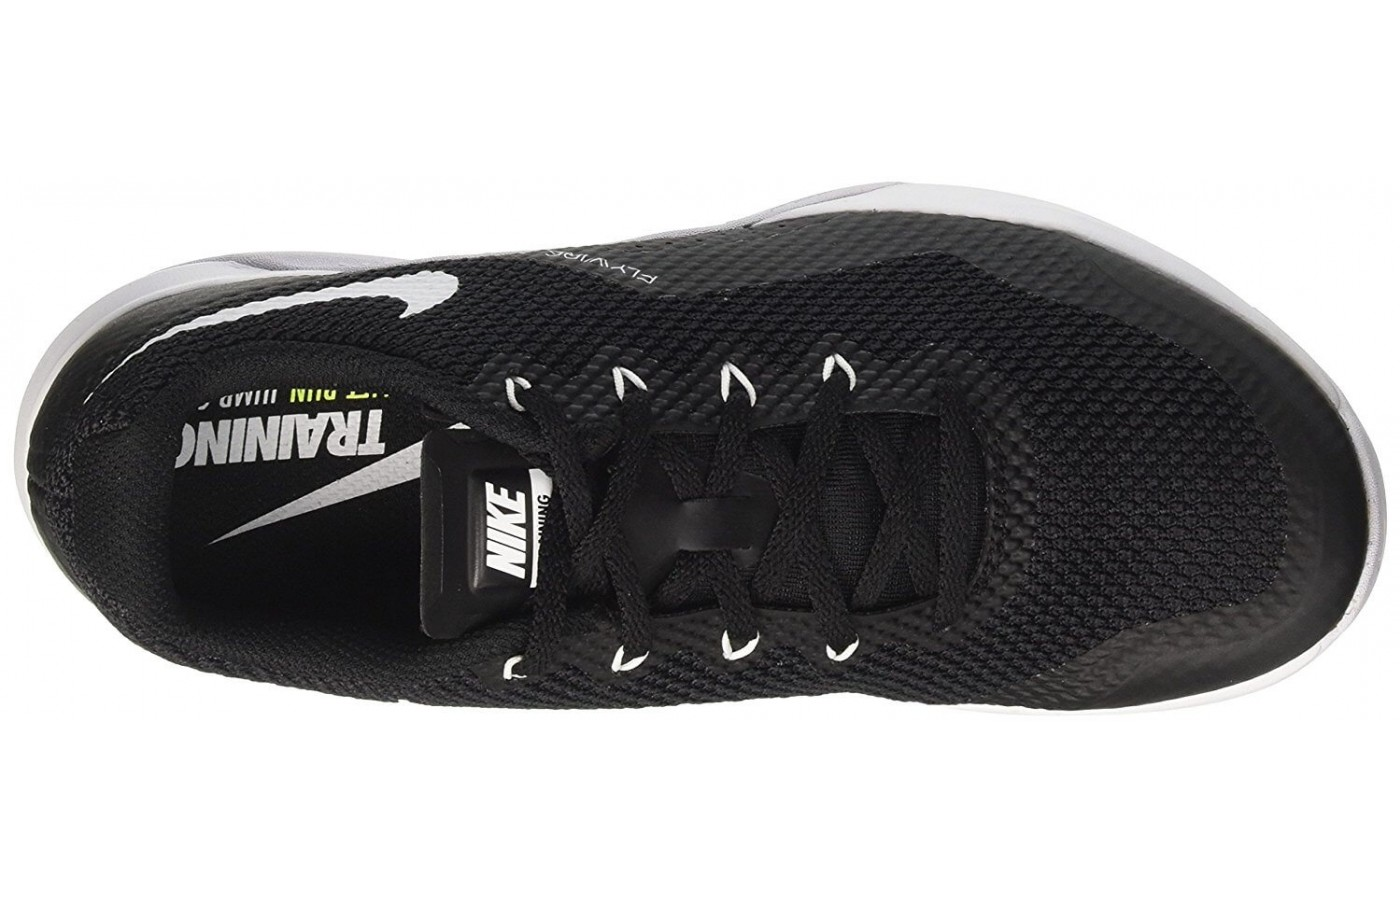 The Nike Metcon Repper DSX includes an Ortholite insole